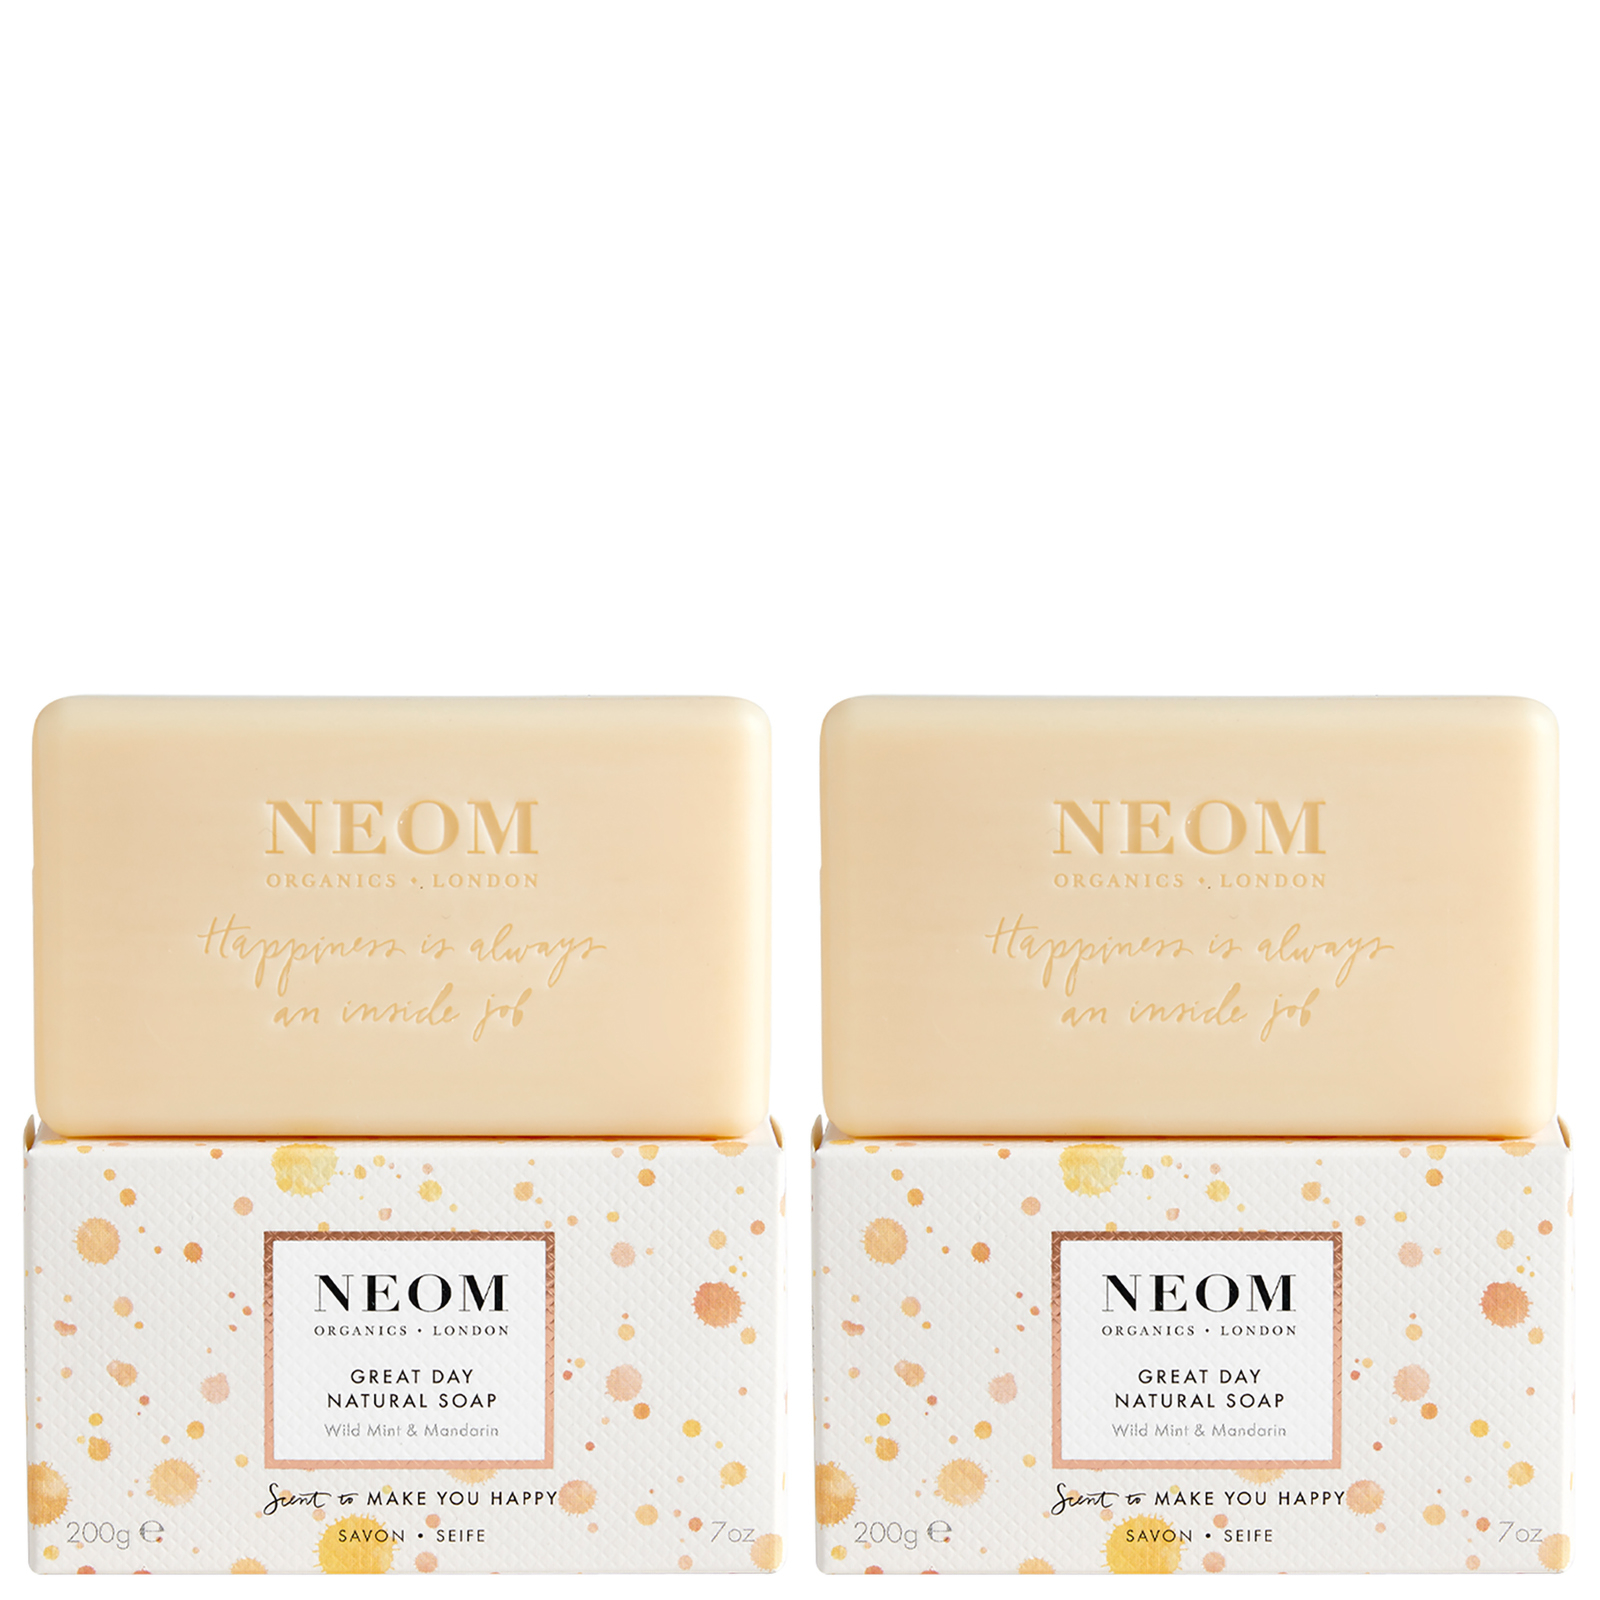 Neom Organics London Scent To Make You Happy Great Day Natural Soap 2 x 200g